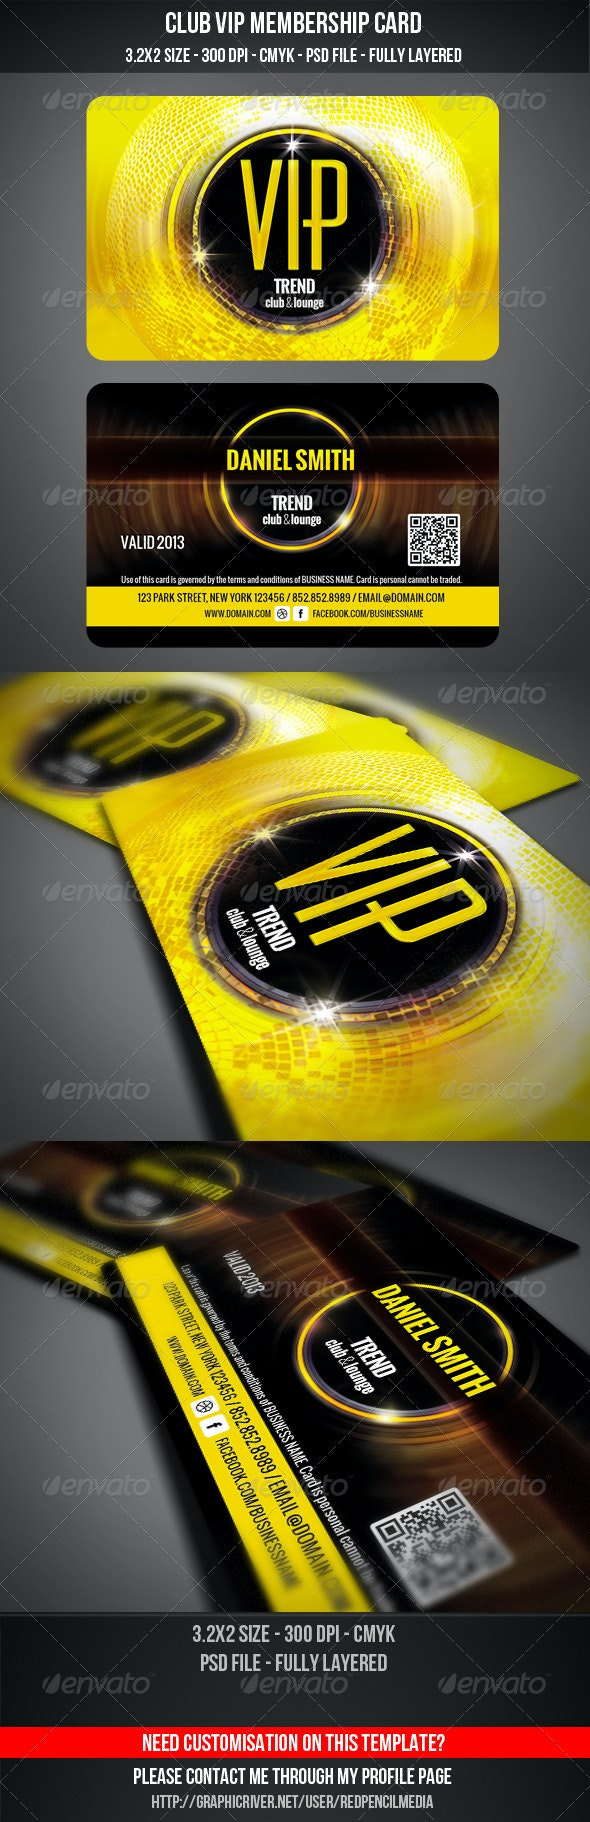 Club VIP Membership Card - Loyalty Cards Cards & Invites